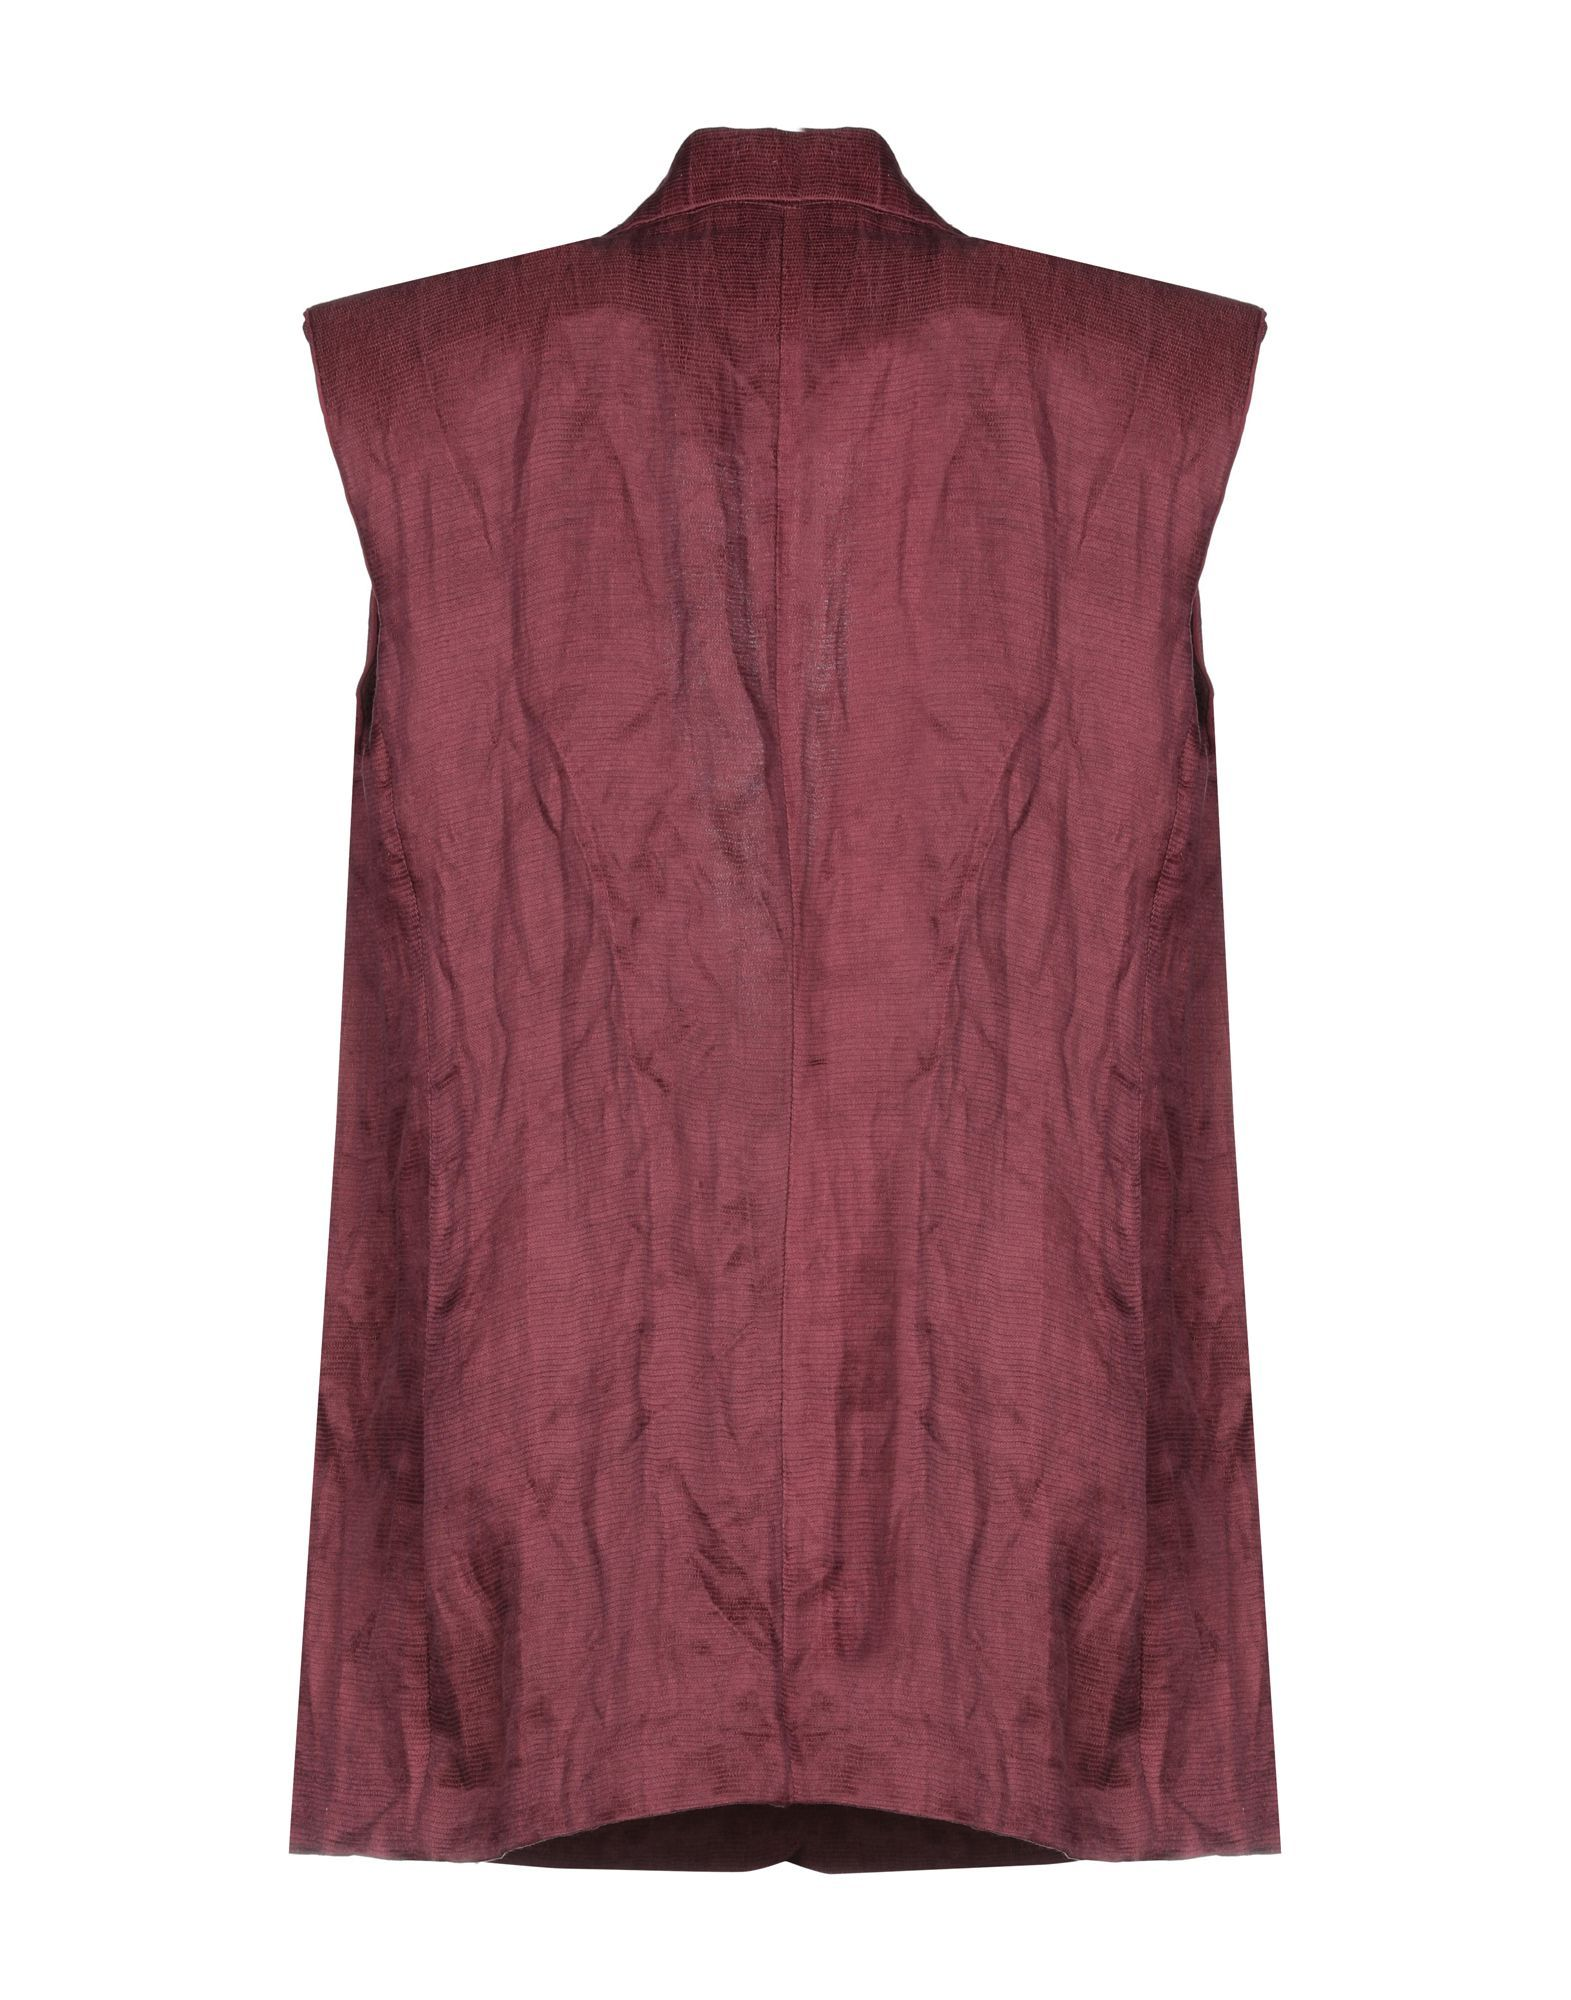 SUITS AND JACKETS Wtr Maroon Woman Linen